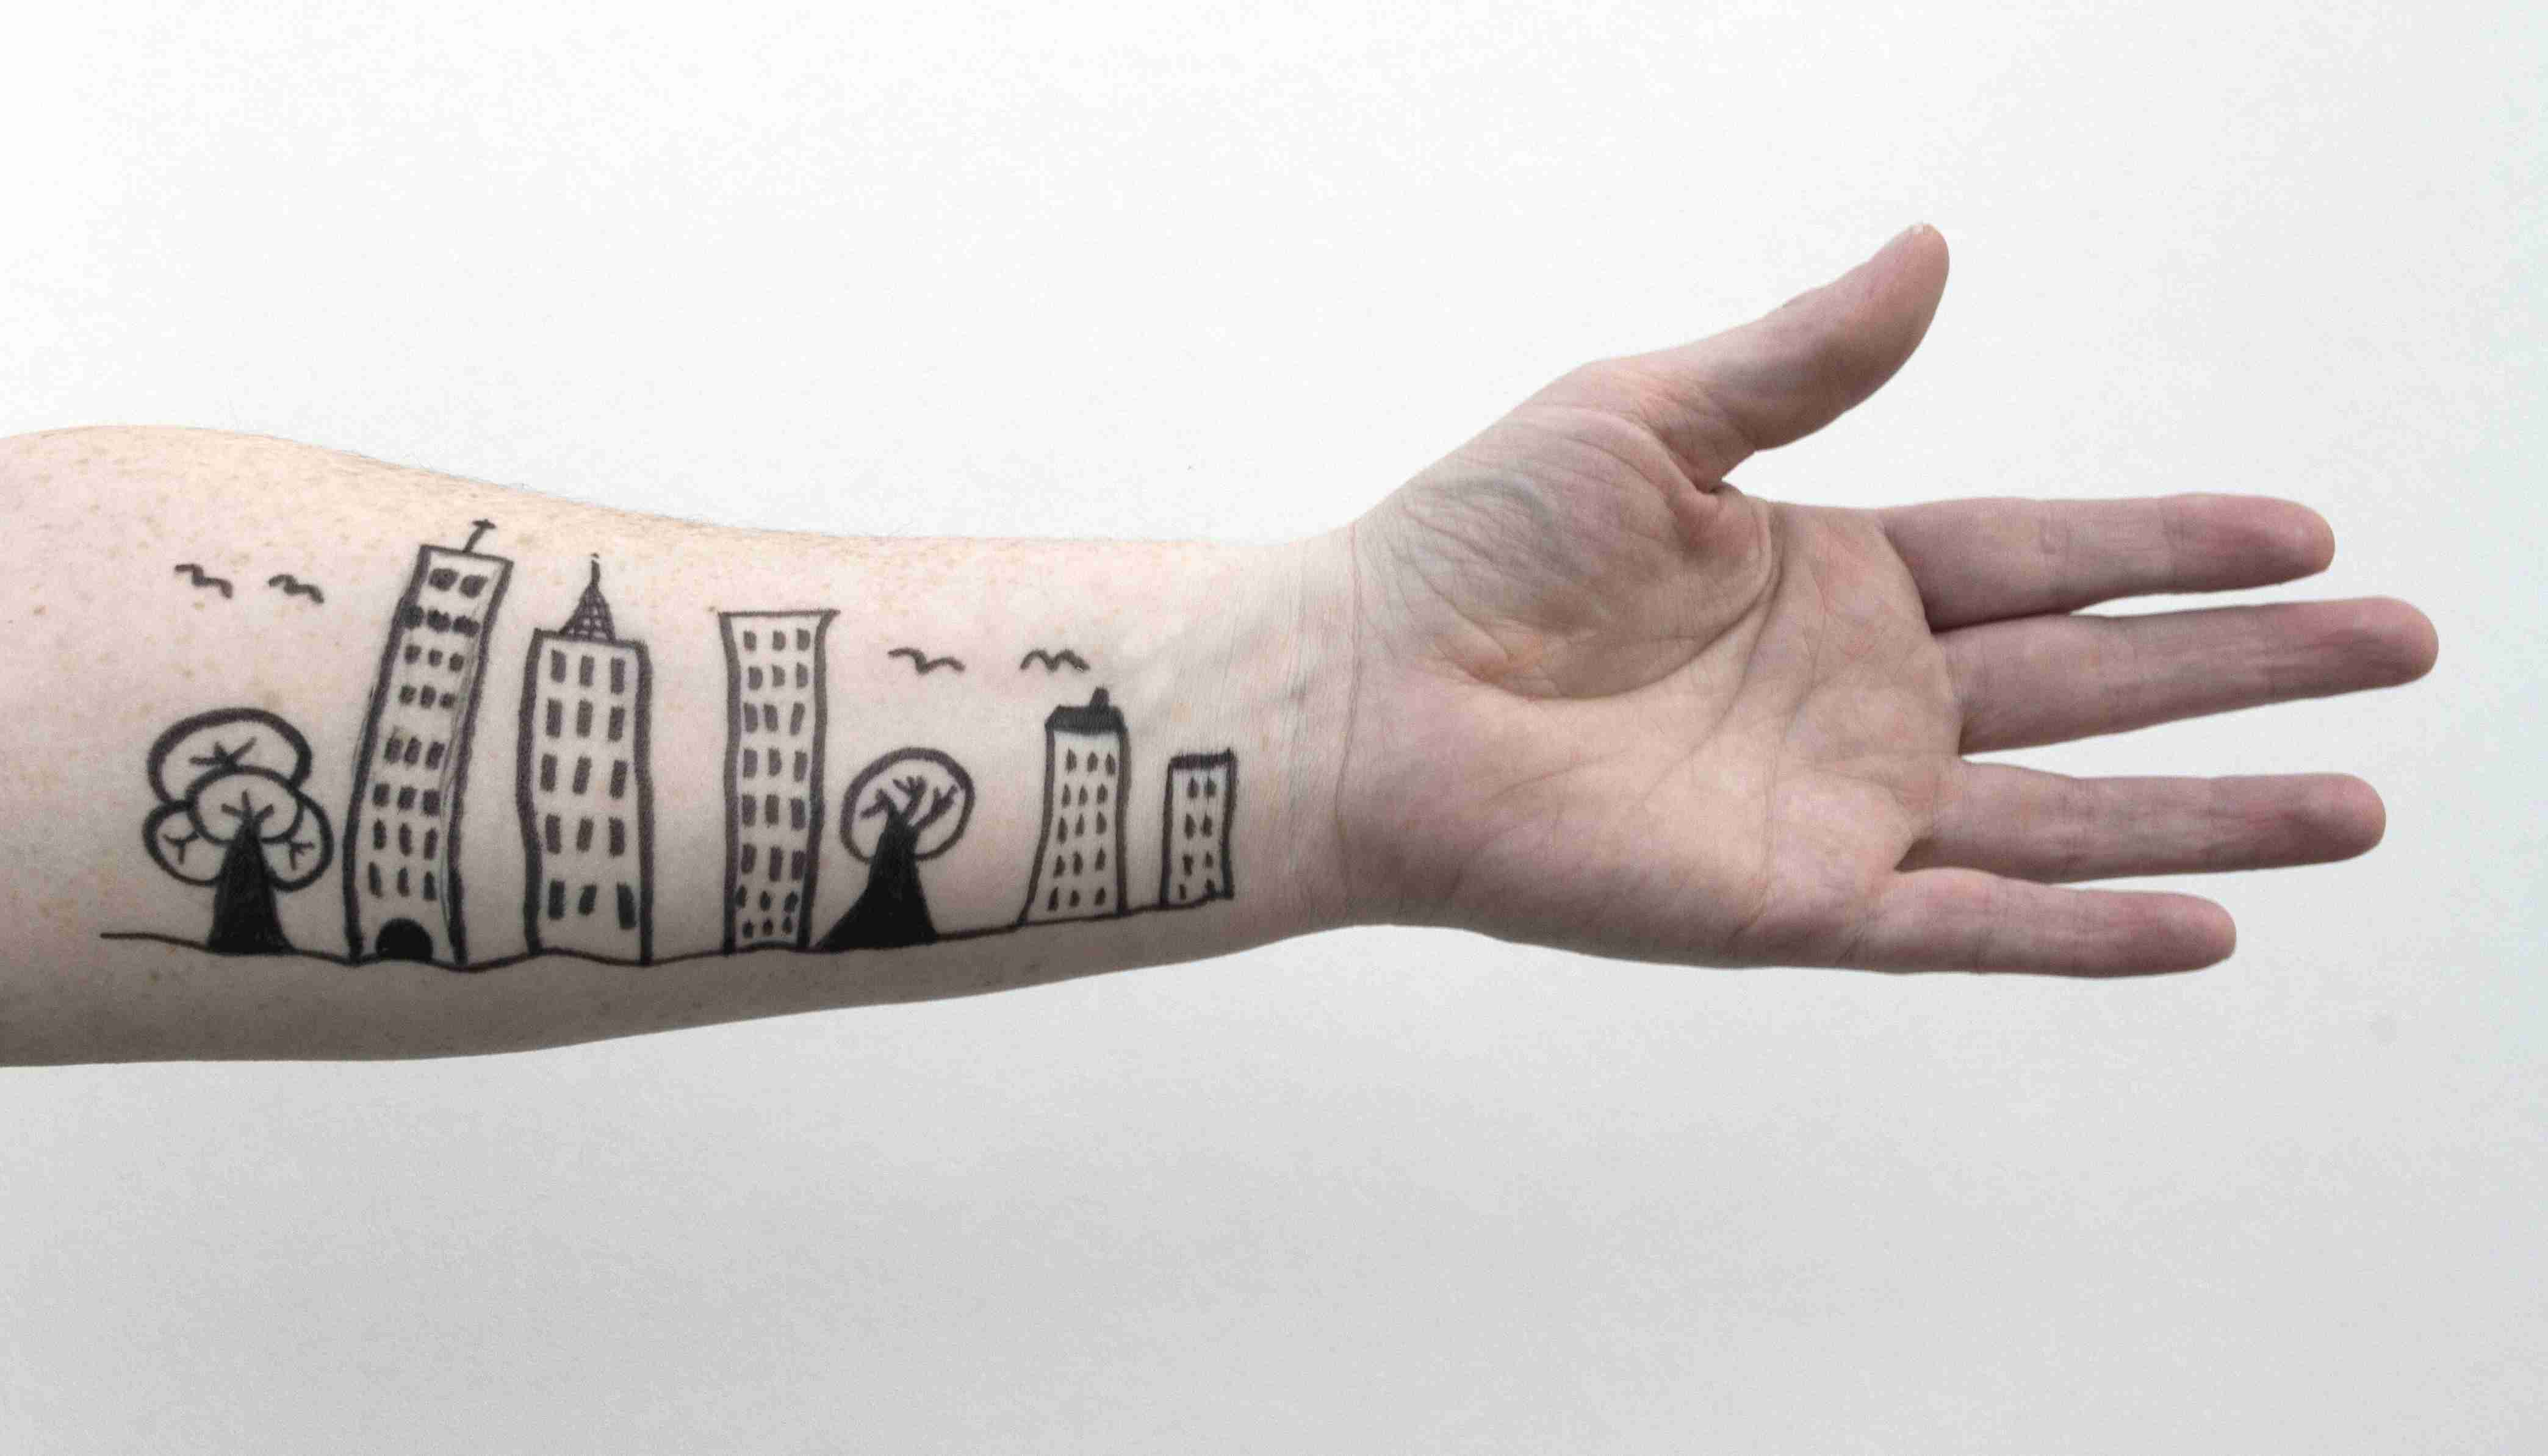 Drawing on an arm